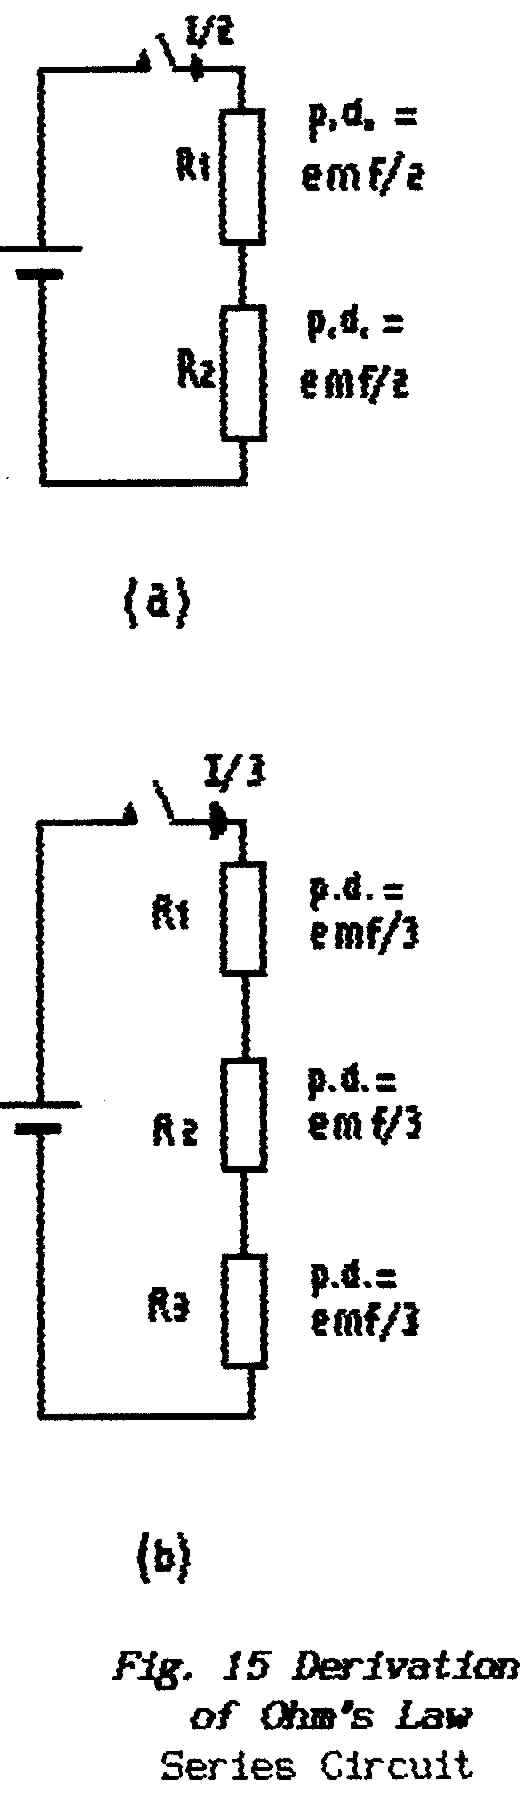 Fundamentals 1 Basic Physics Theory The Flow Of Current In Series Circuit Fig15ashows Two Identical Conductors Connected Across Cell A Manner That Requires To First Through One And Then